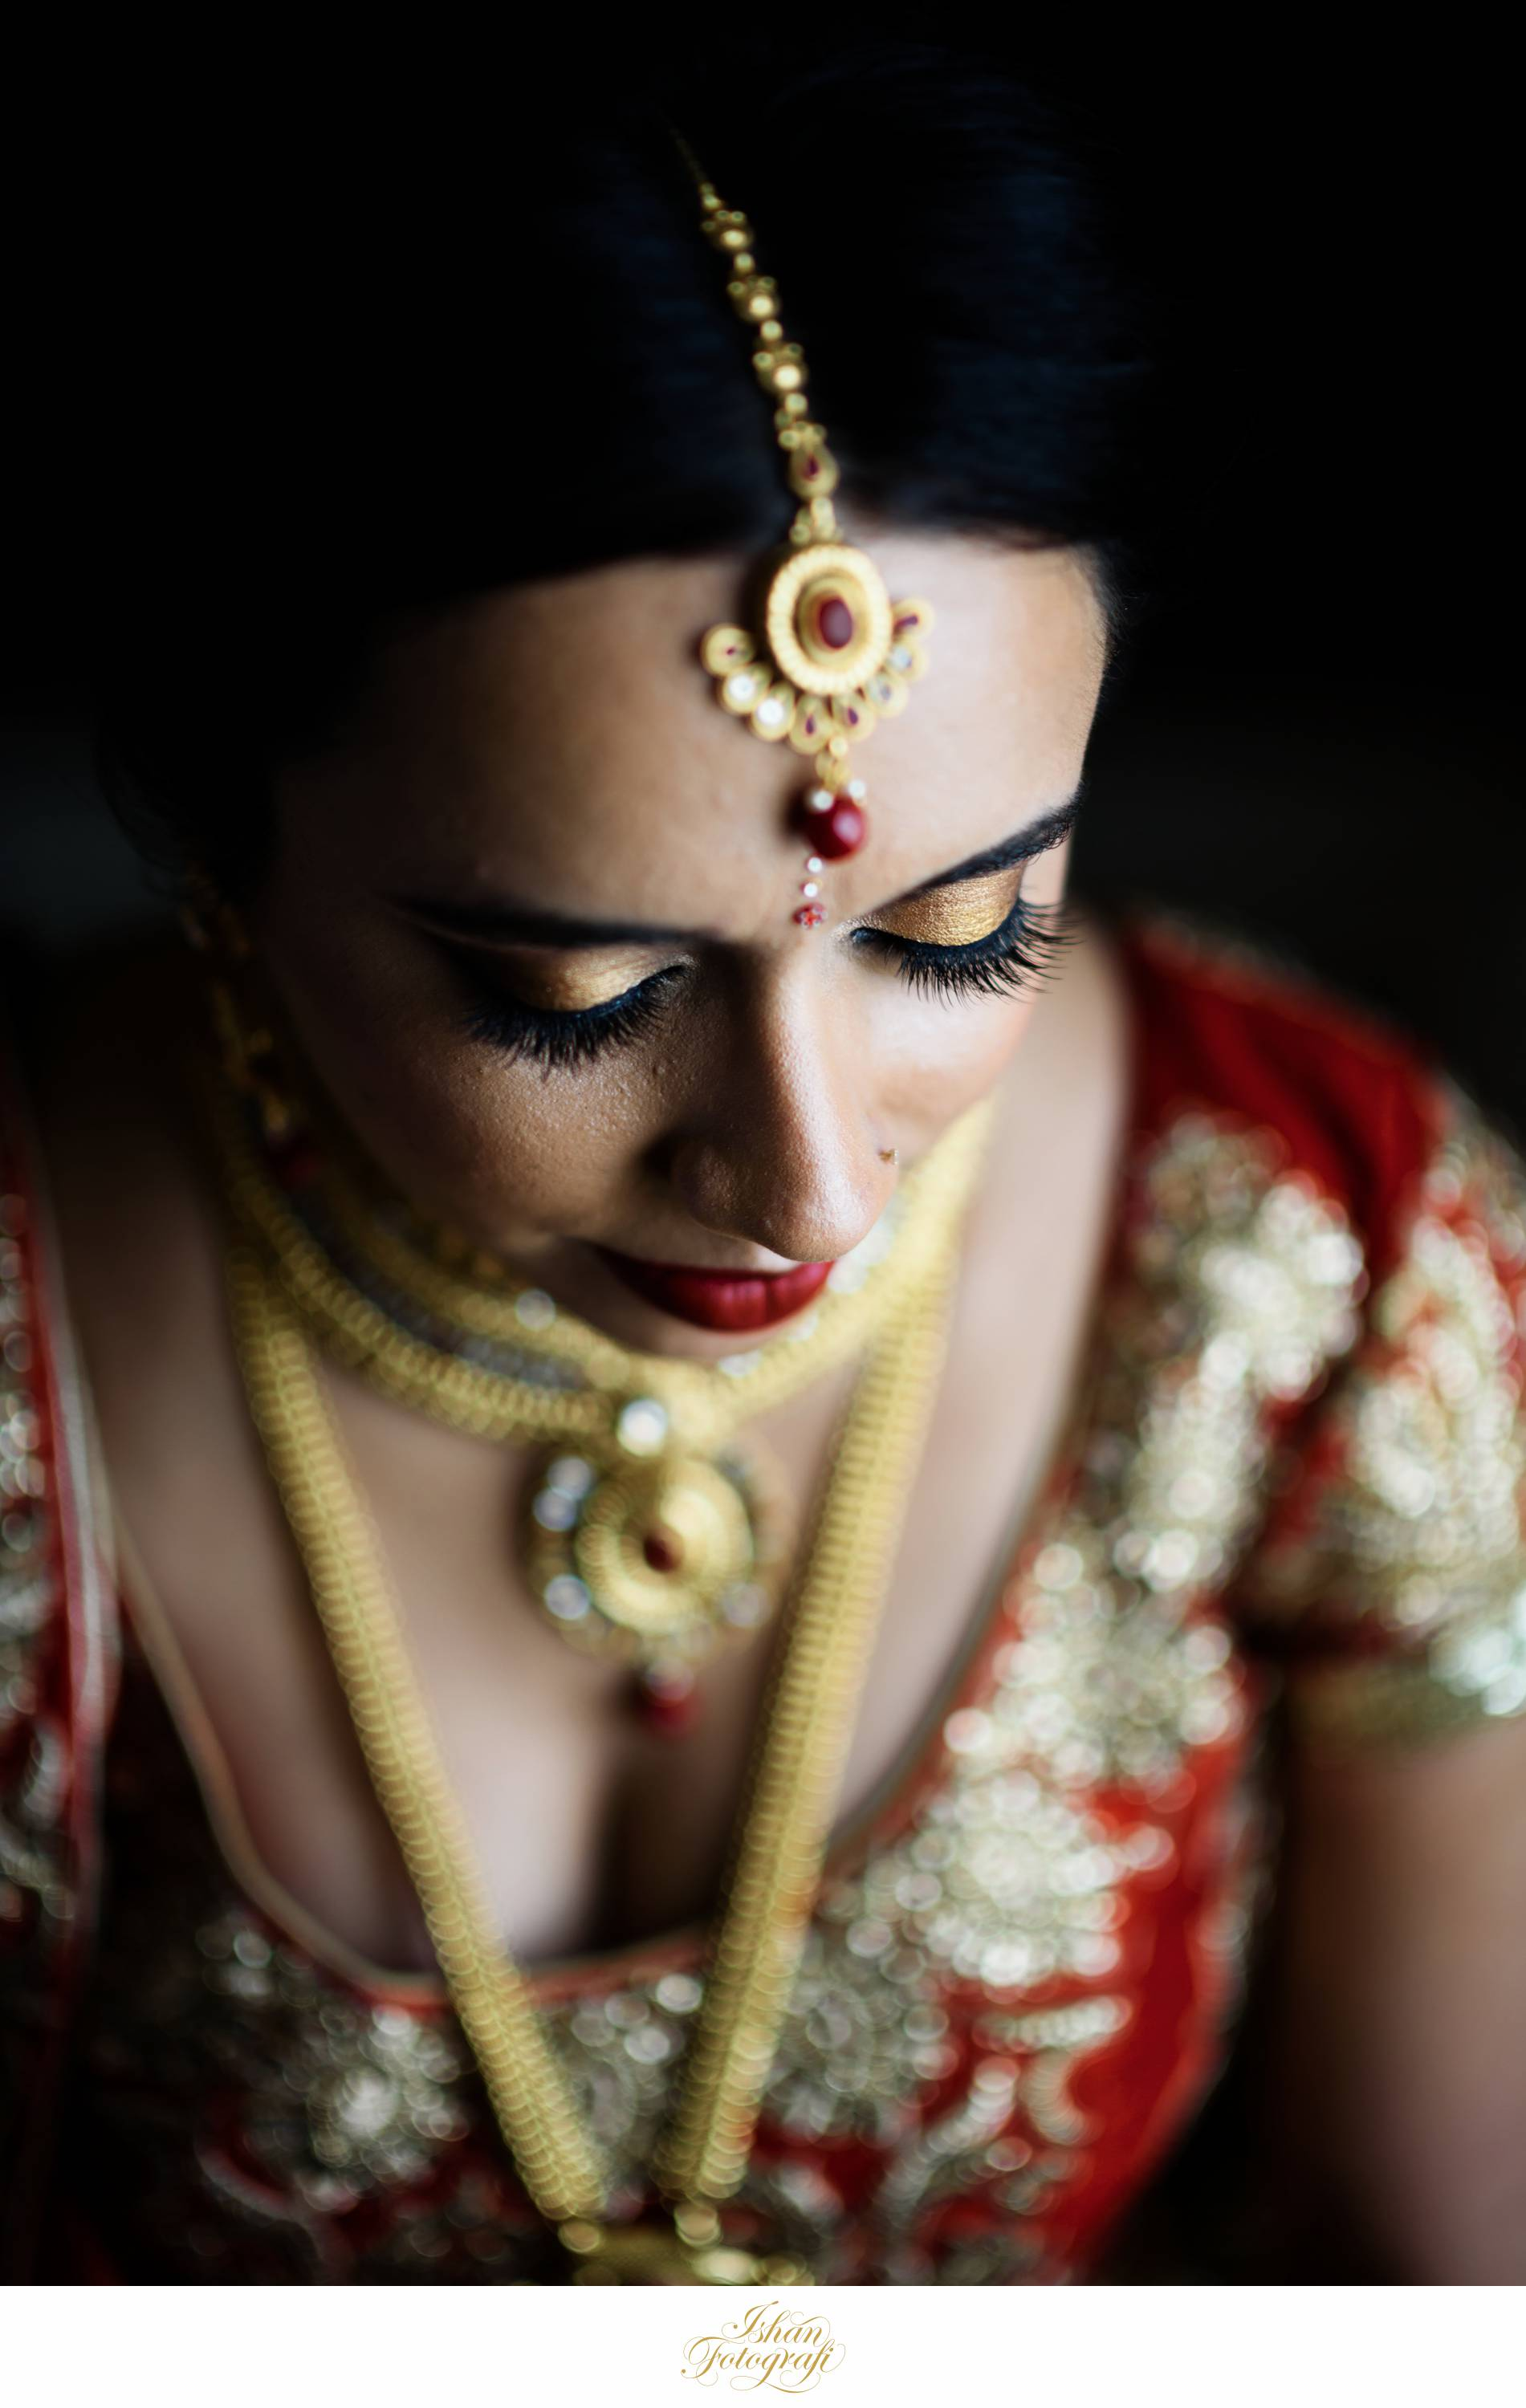 Our bride looked amazing with the bridal tikka.